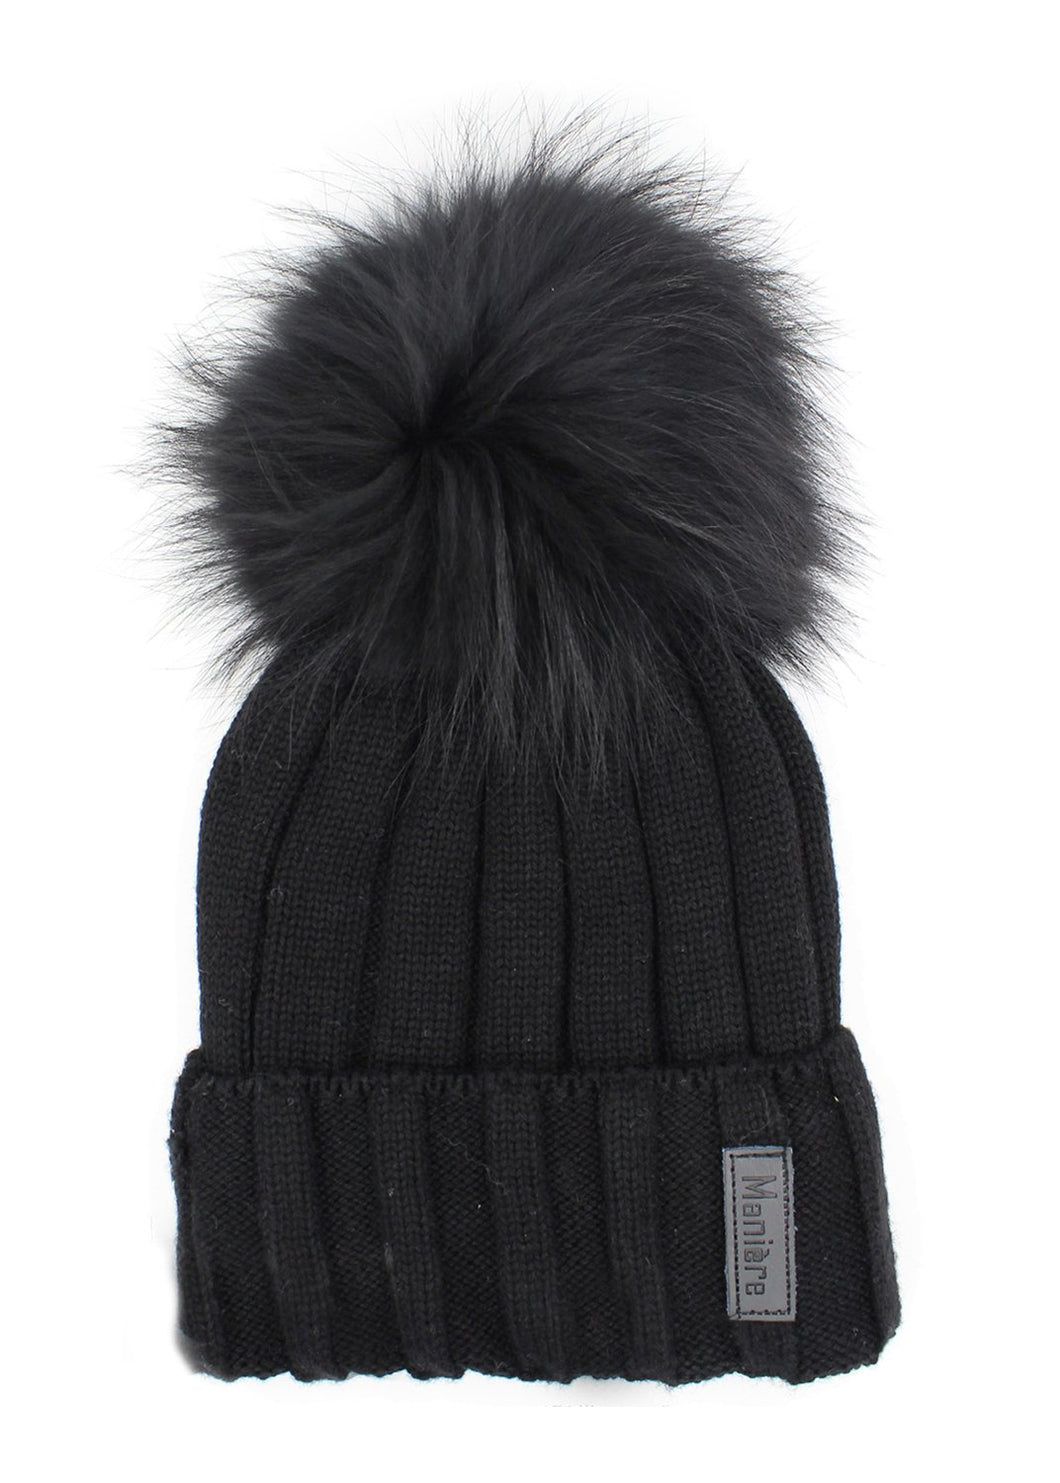 Adult Merino Wool Fur Pom Pom Hat - Black